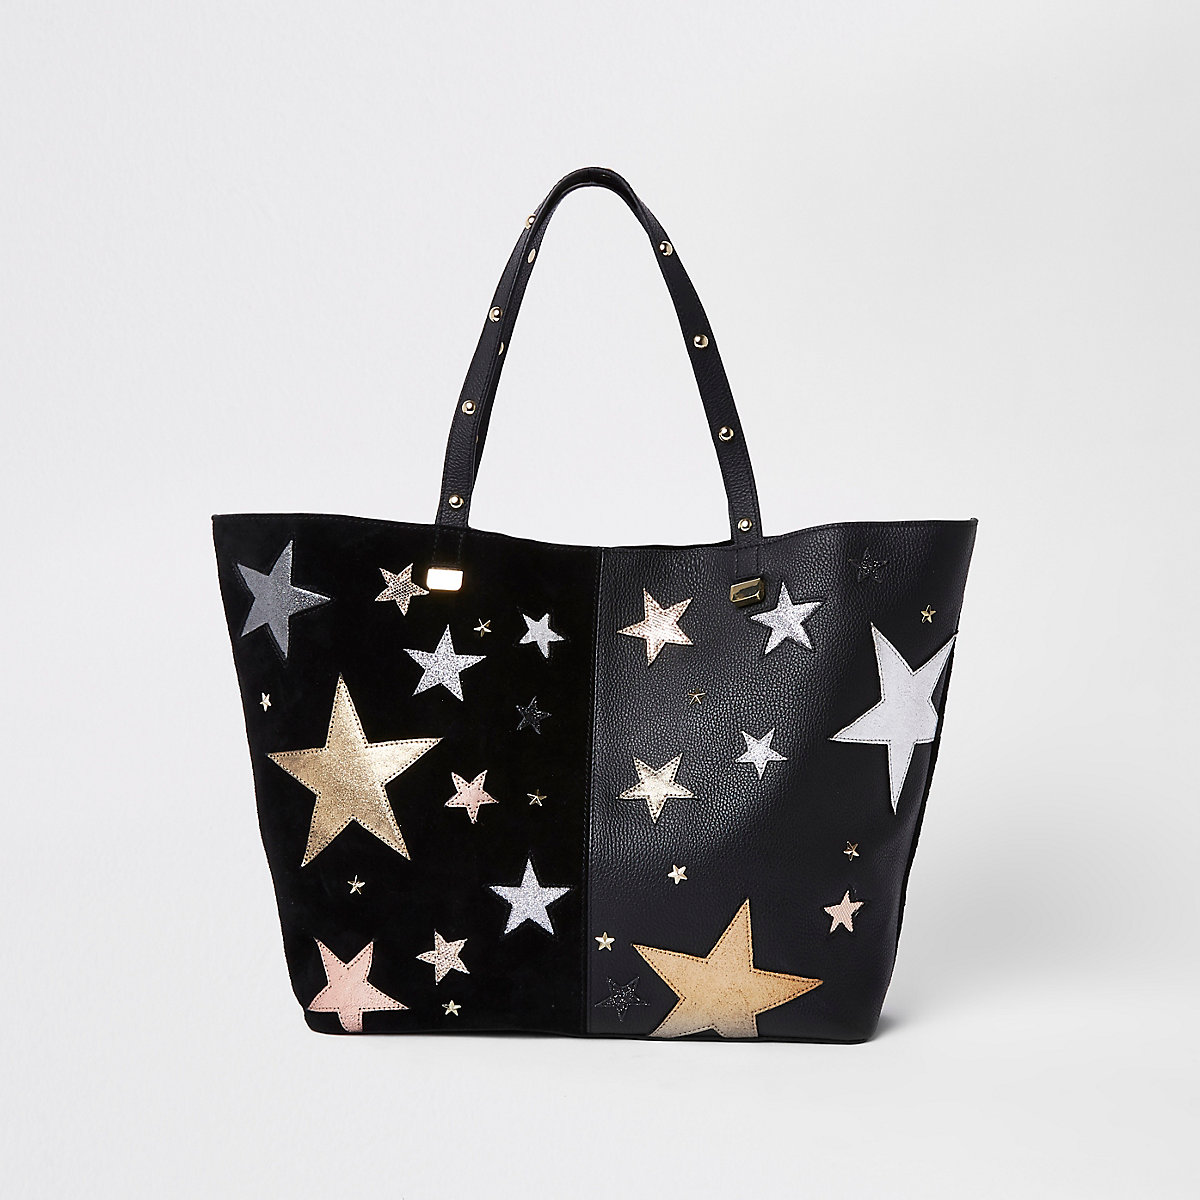 Black leather star embroidered tote bag